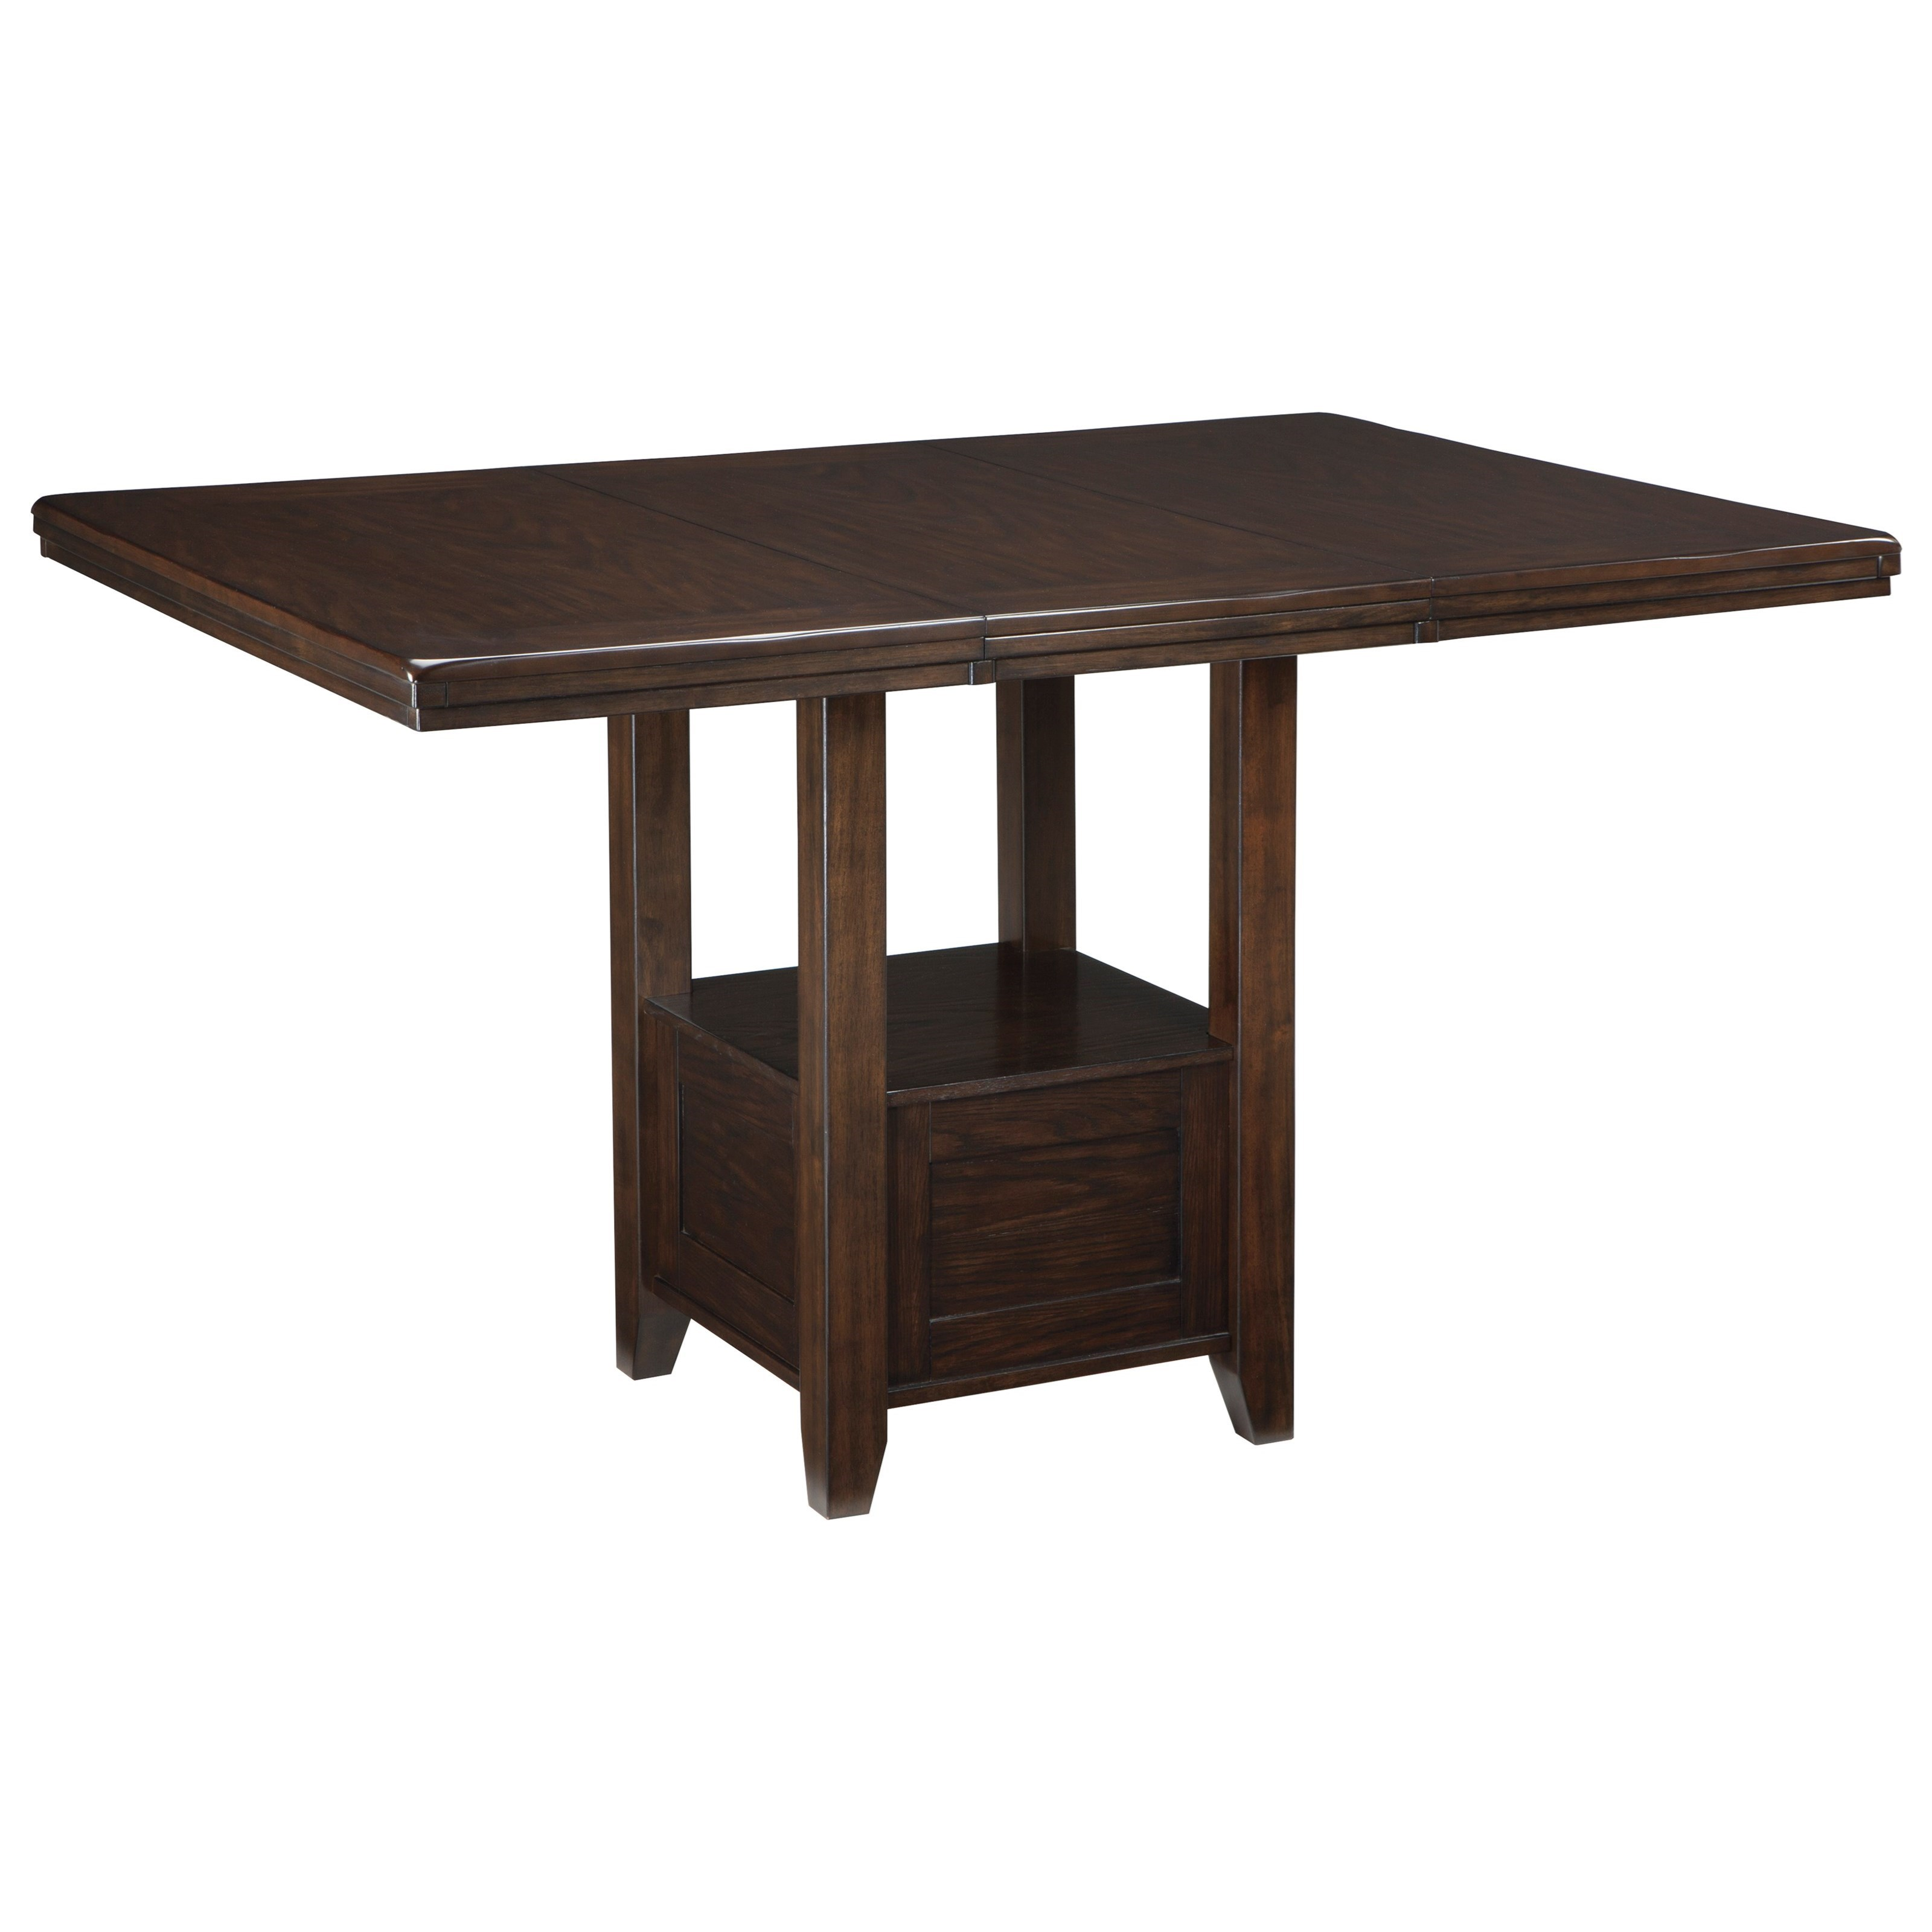 Rectangular dining room extension table with shelf by Table extenders dining room